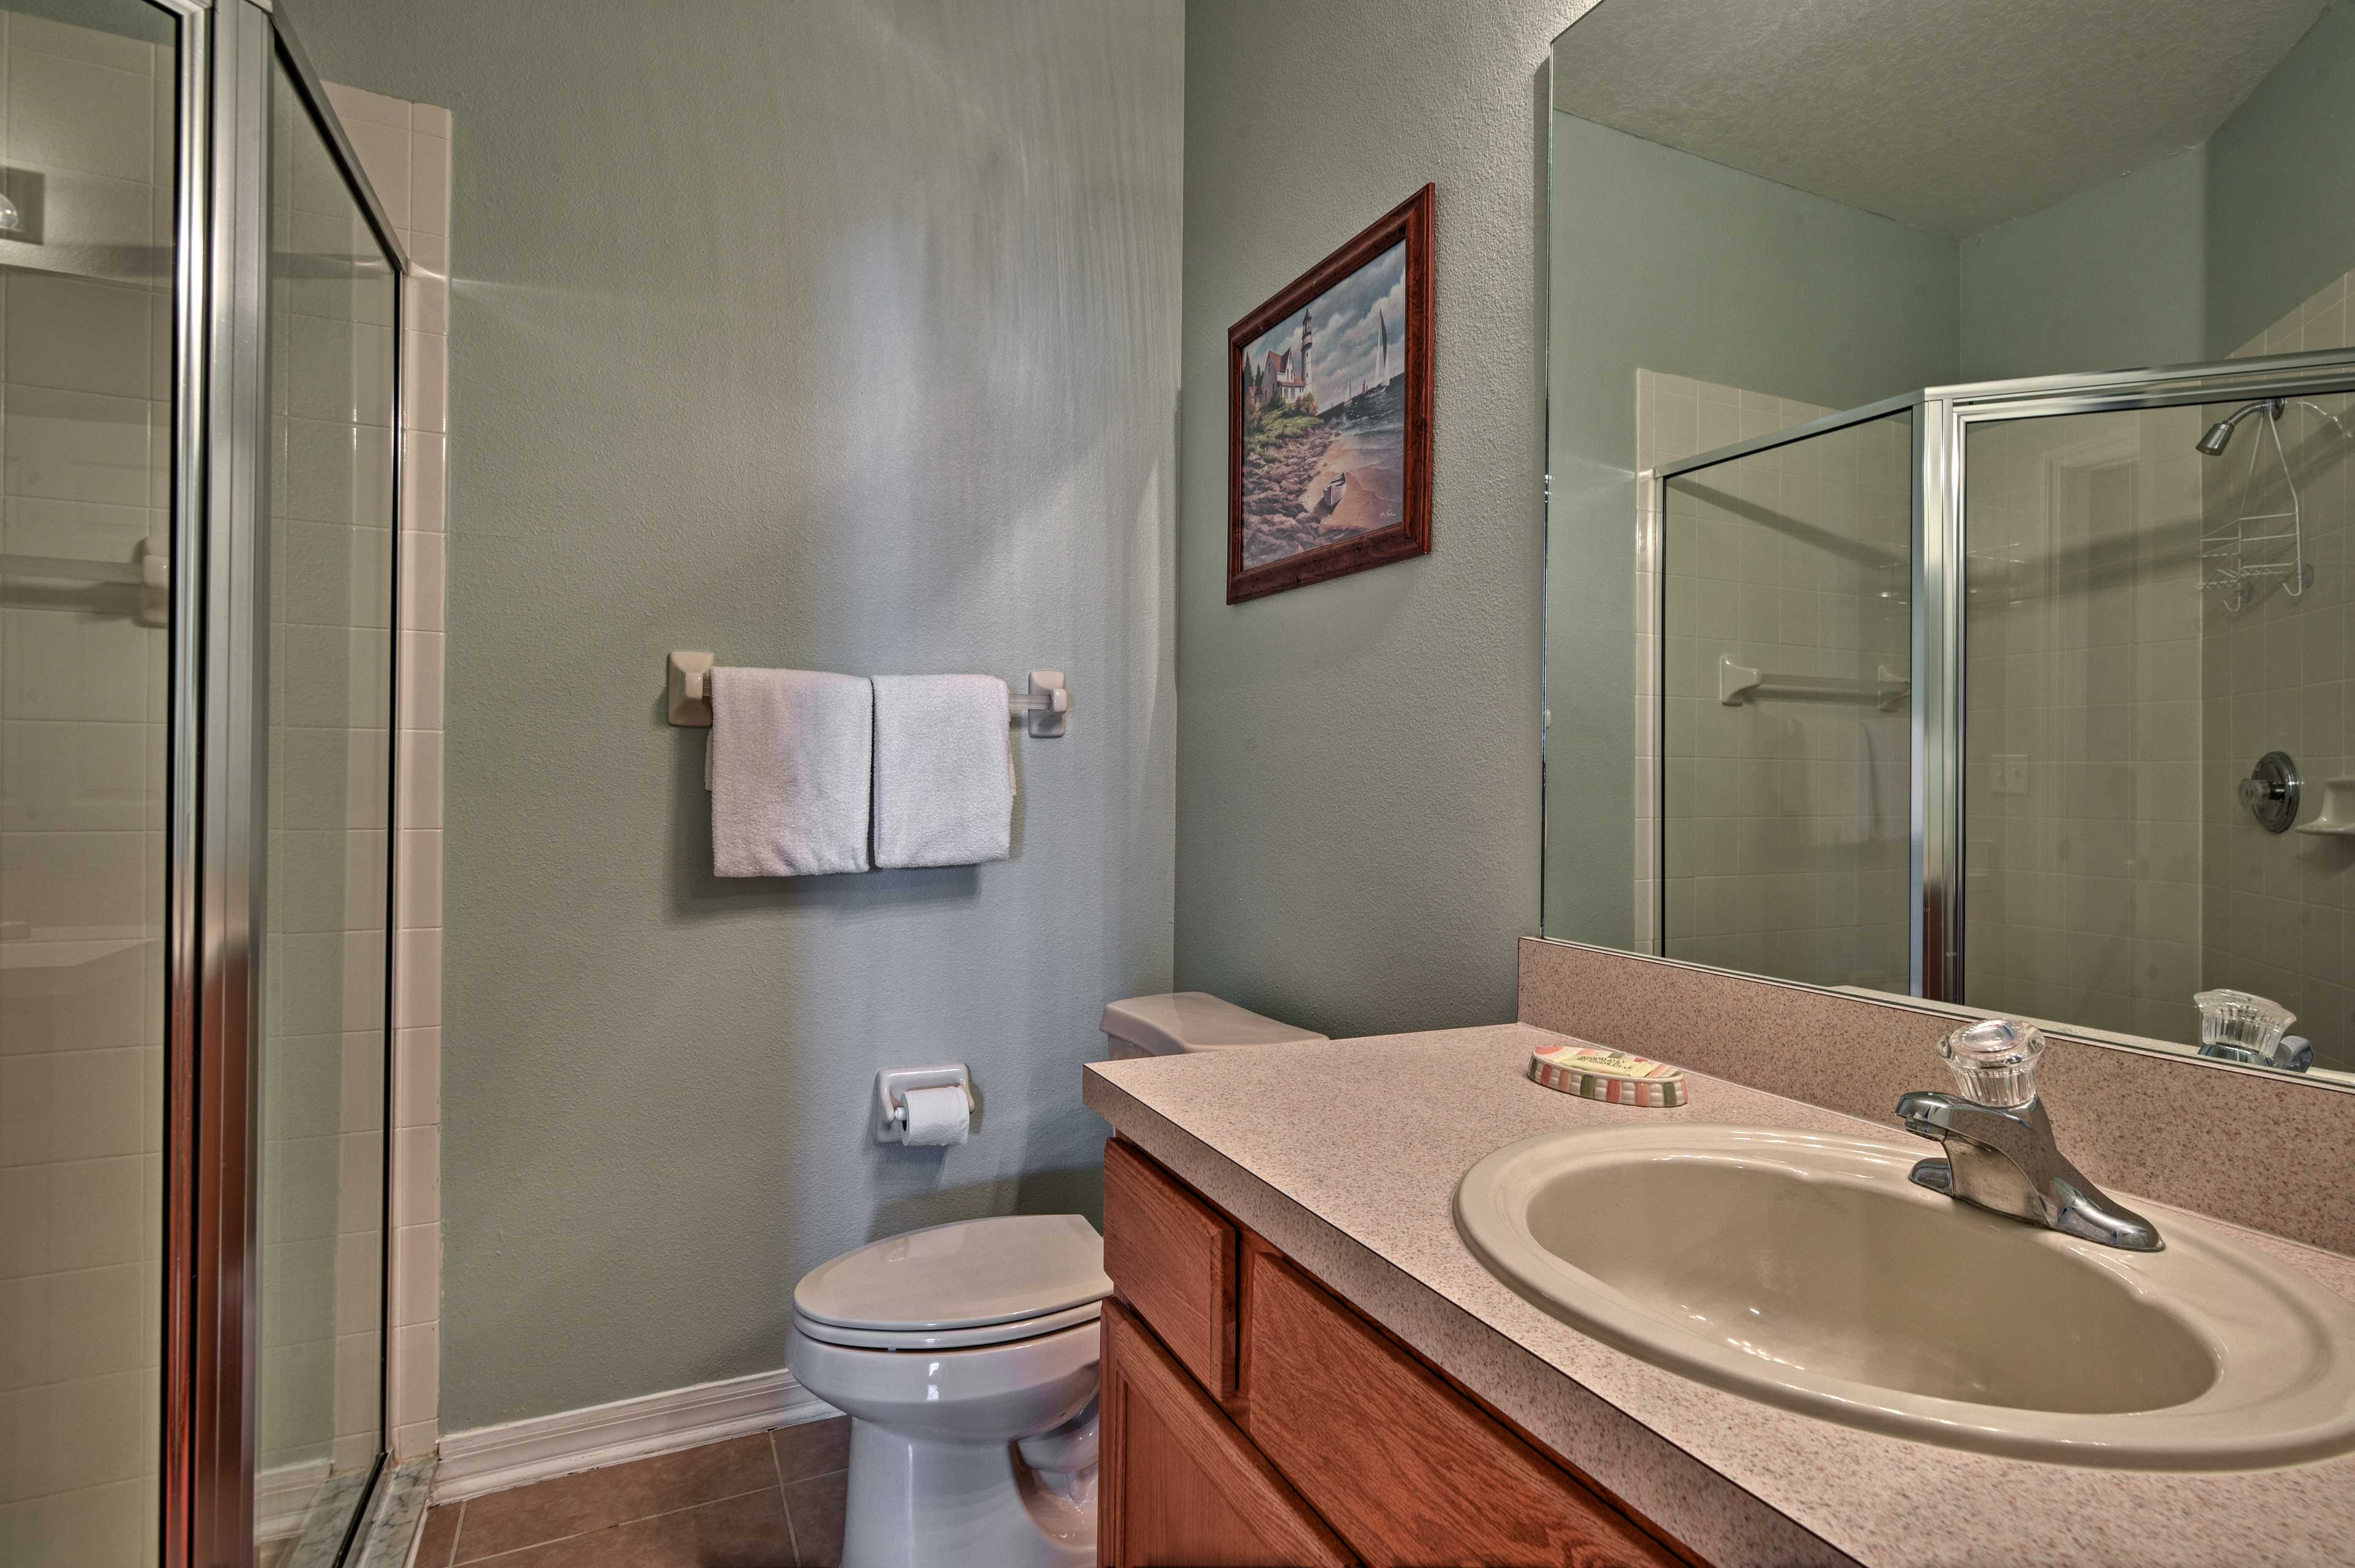 With 4 full bathrooms, there's no shortage of space to get ready in the mornings.